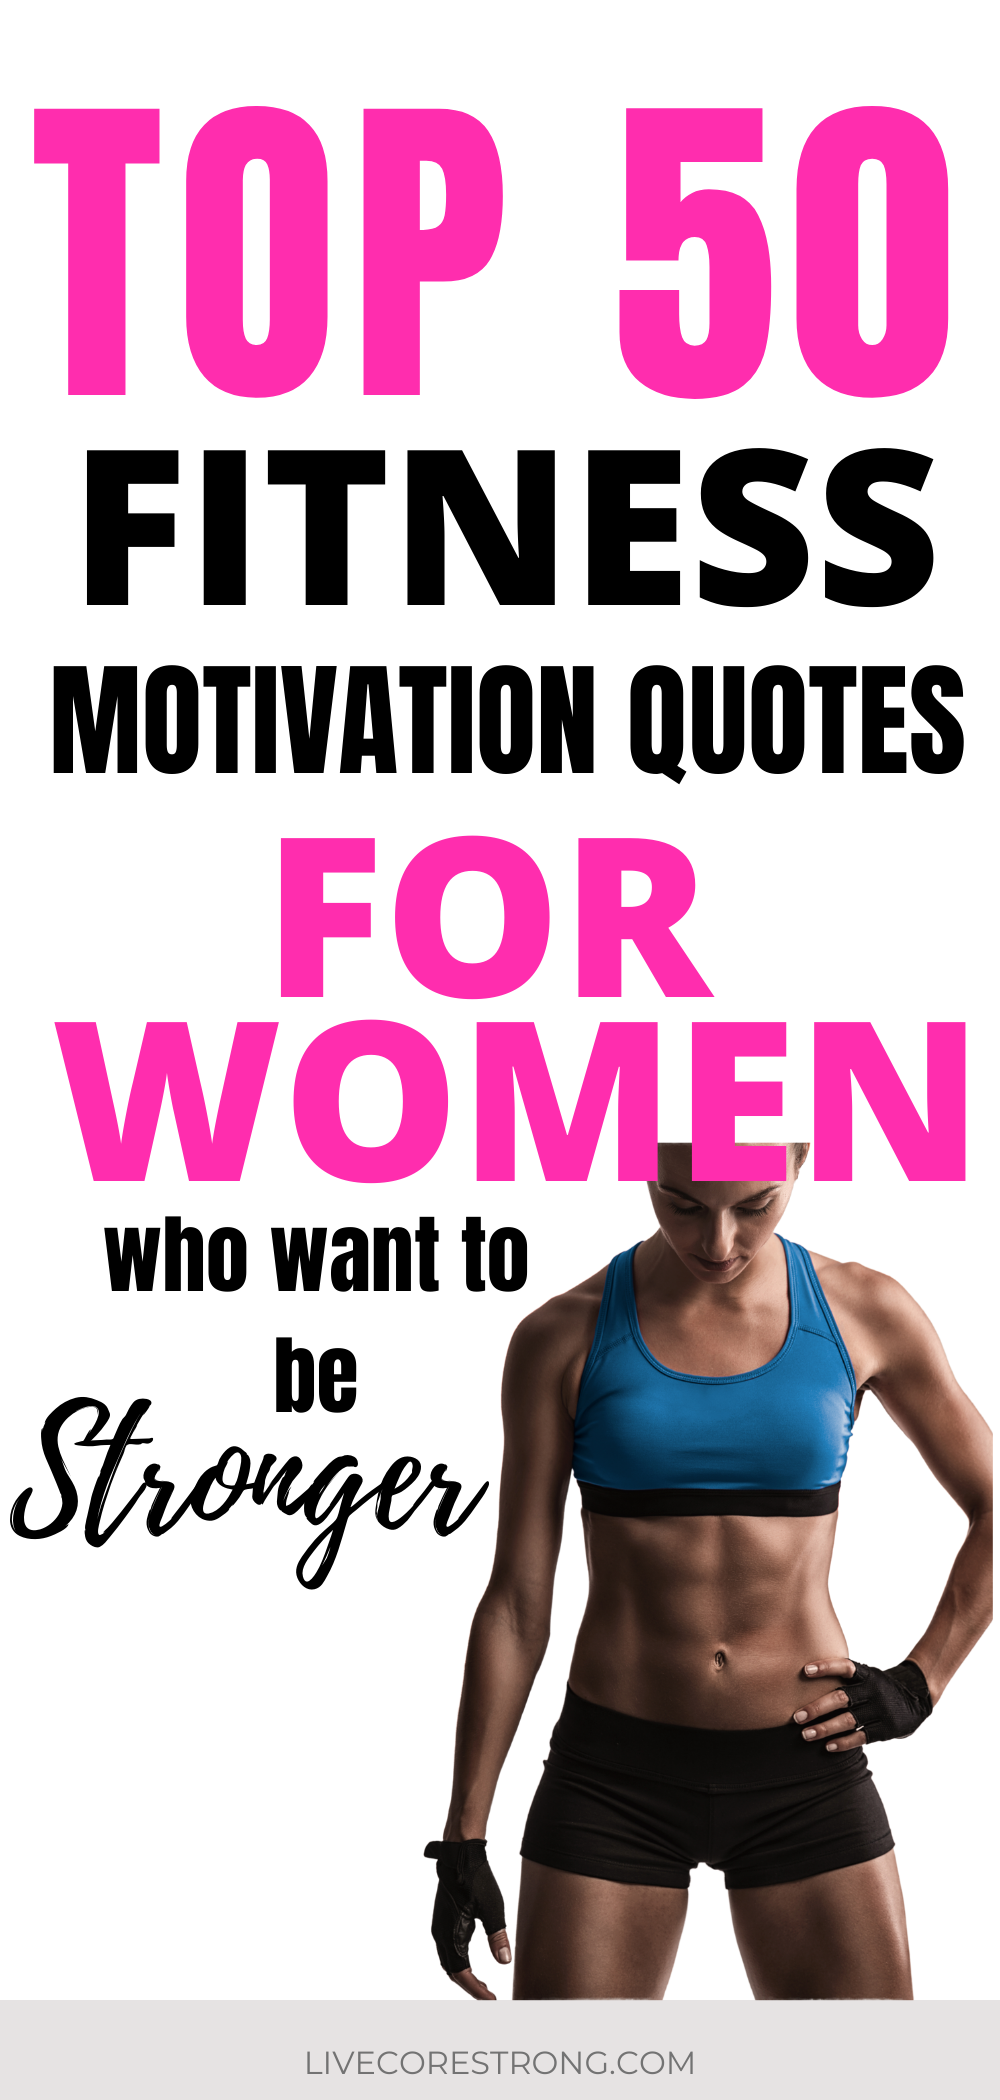 50 Top Motivational Fitness Quotes For Women Who Want To Be Strong Live Core Strong In 2020 Fitness Quotes Women Fitness Motivation Fitness Motivation Quotes It is much easier to build strong girls than to repair broken women. pinterest